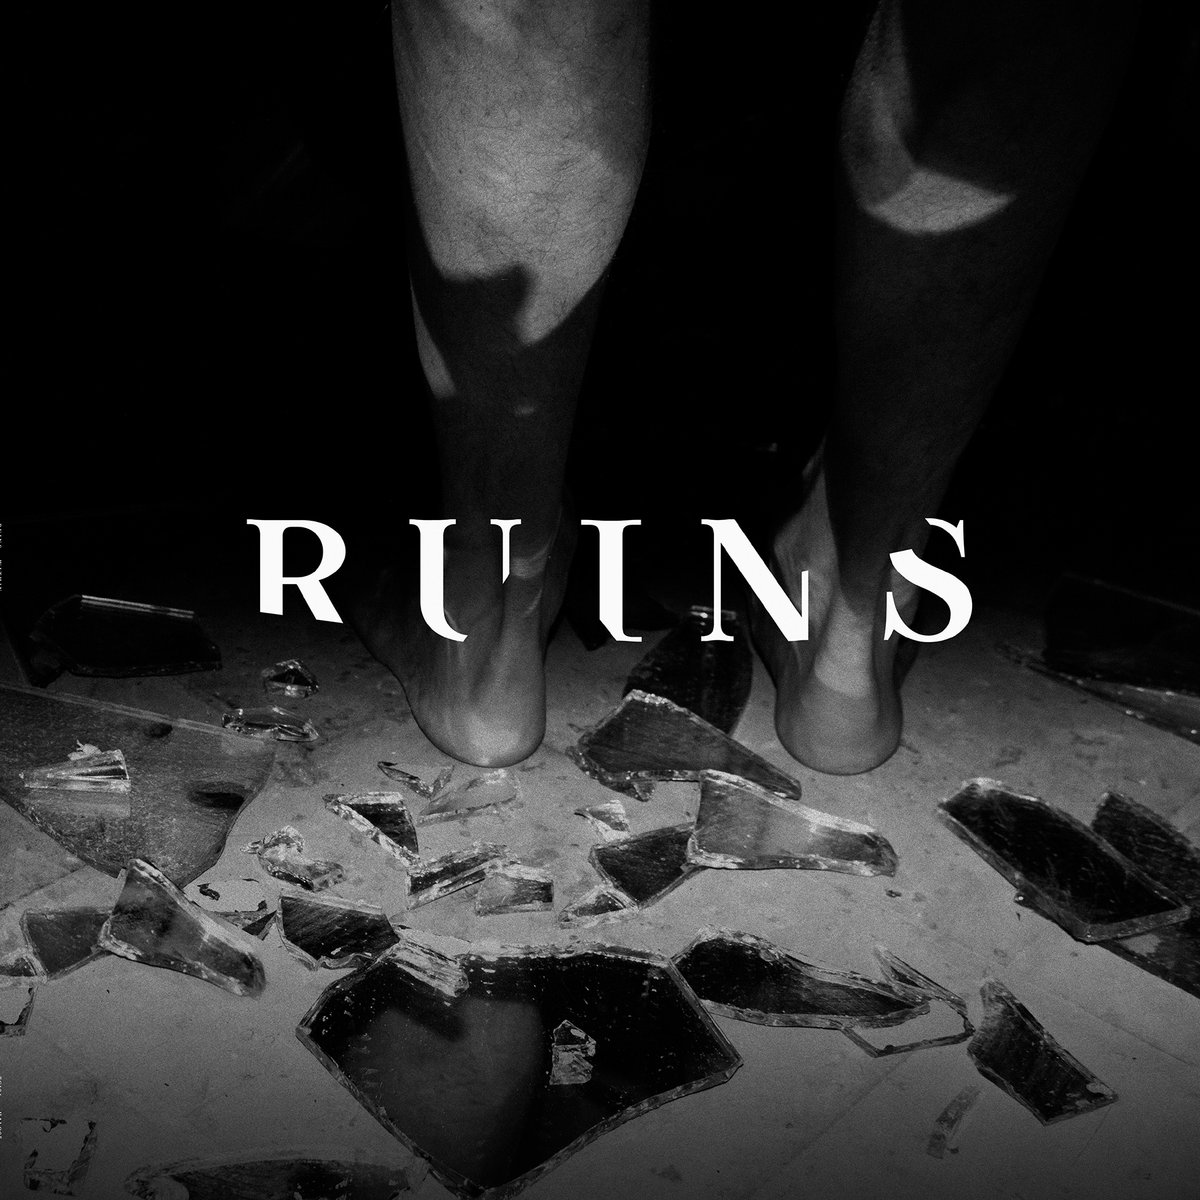 Ruins - Asylum @ 'Within' album (bielefeld, metal)